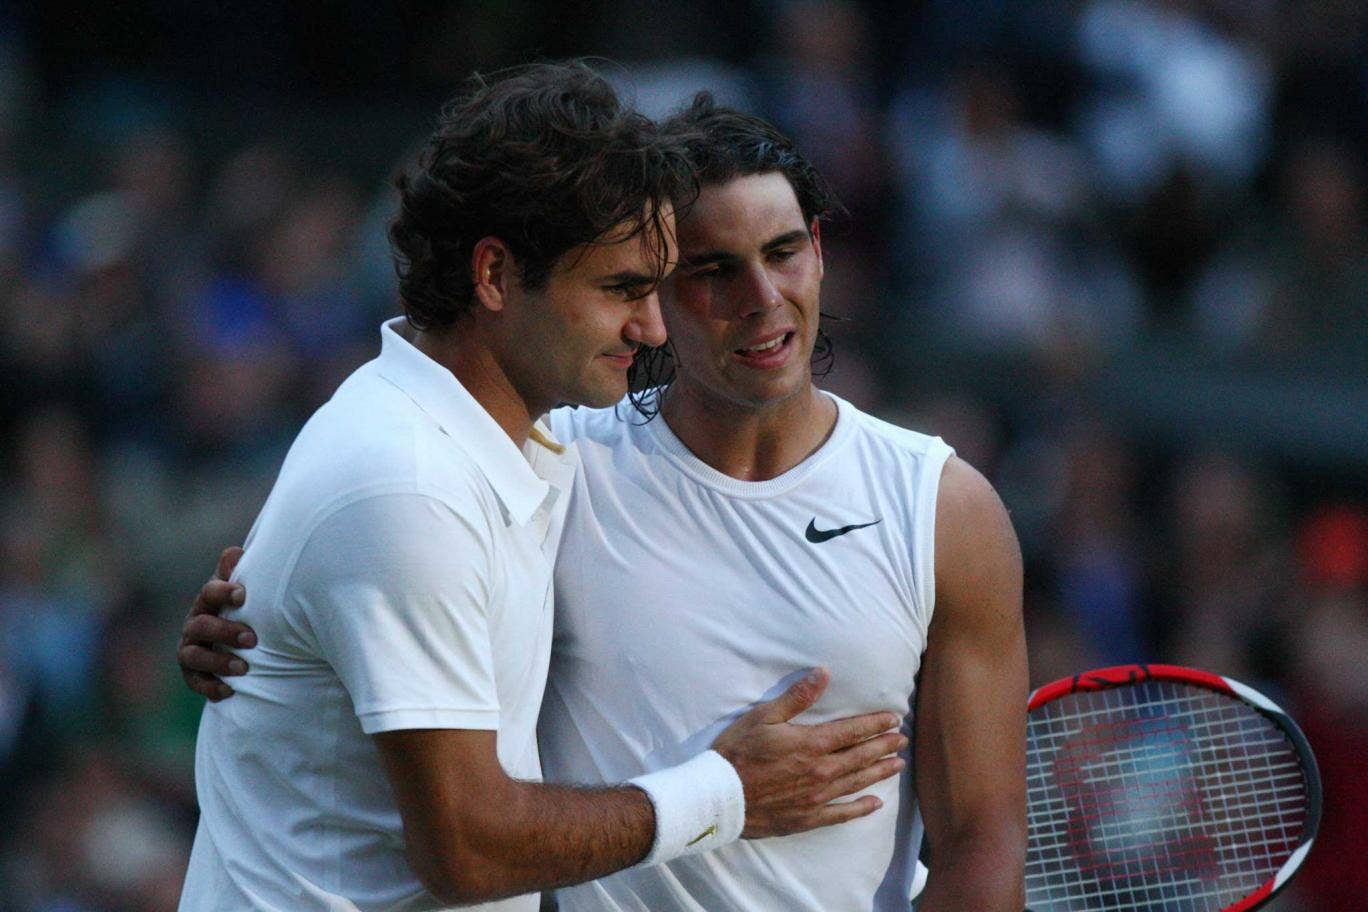 <p><strong>2008</strong></p> <p>Clay court specialist Rafael Nadal beat reigning champ Roger Federer in an unforgettable five-set final</p>